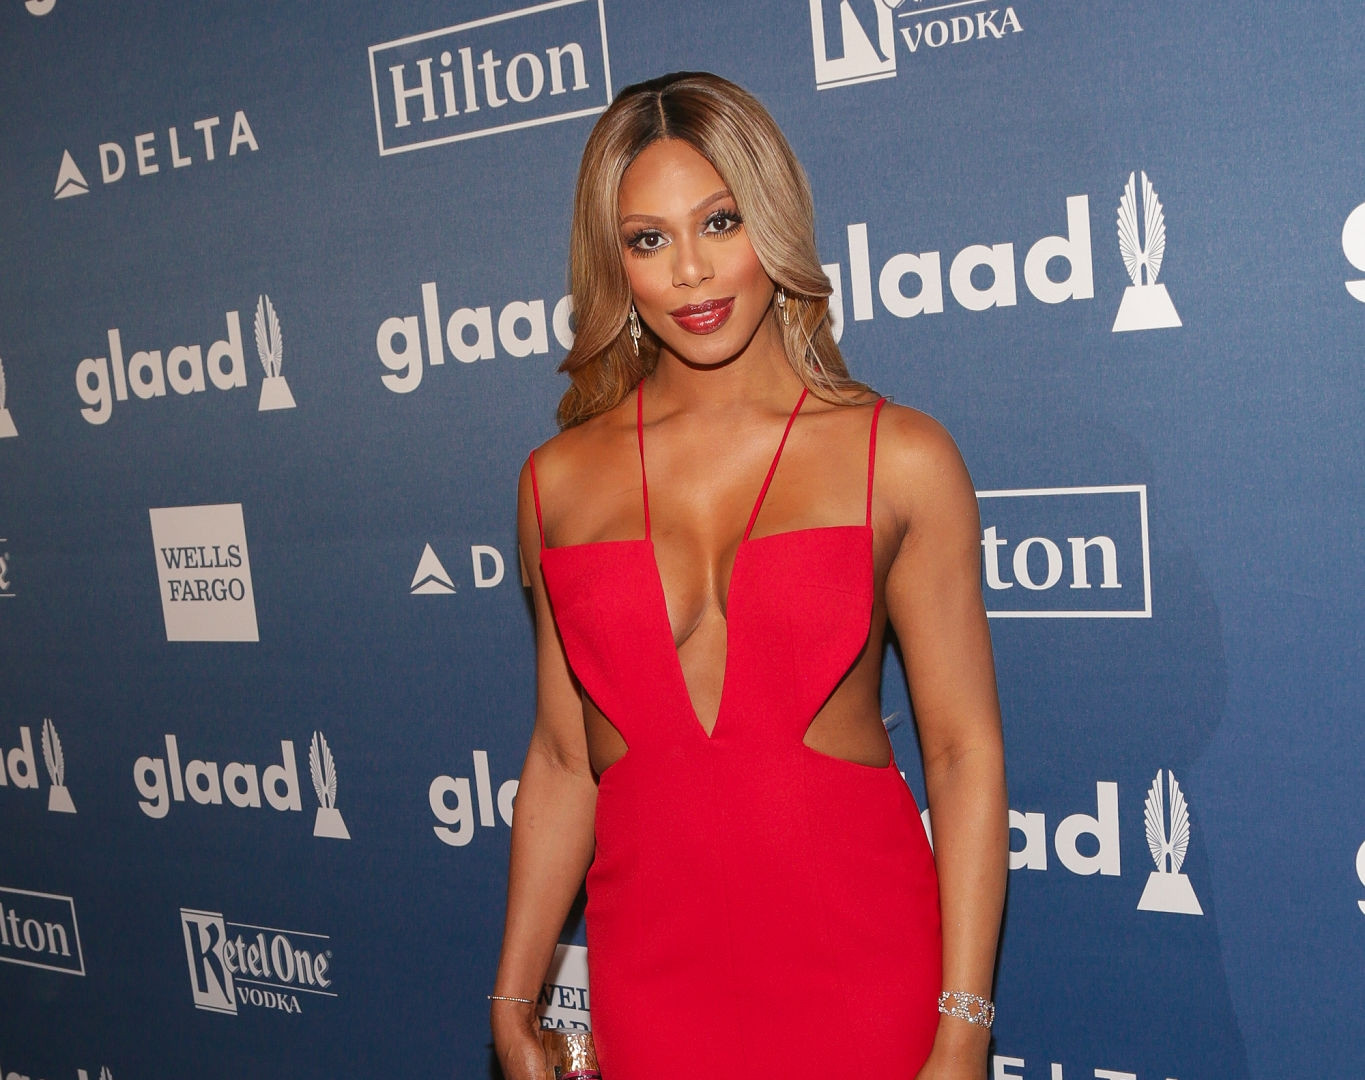 gettyimages-531487160-2048x2048.jpg